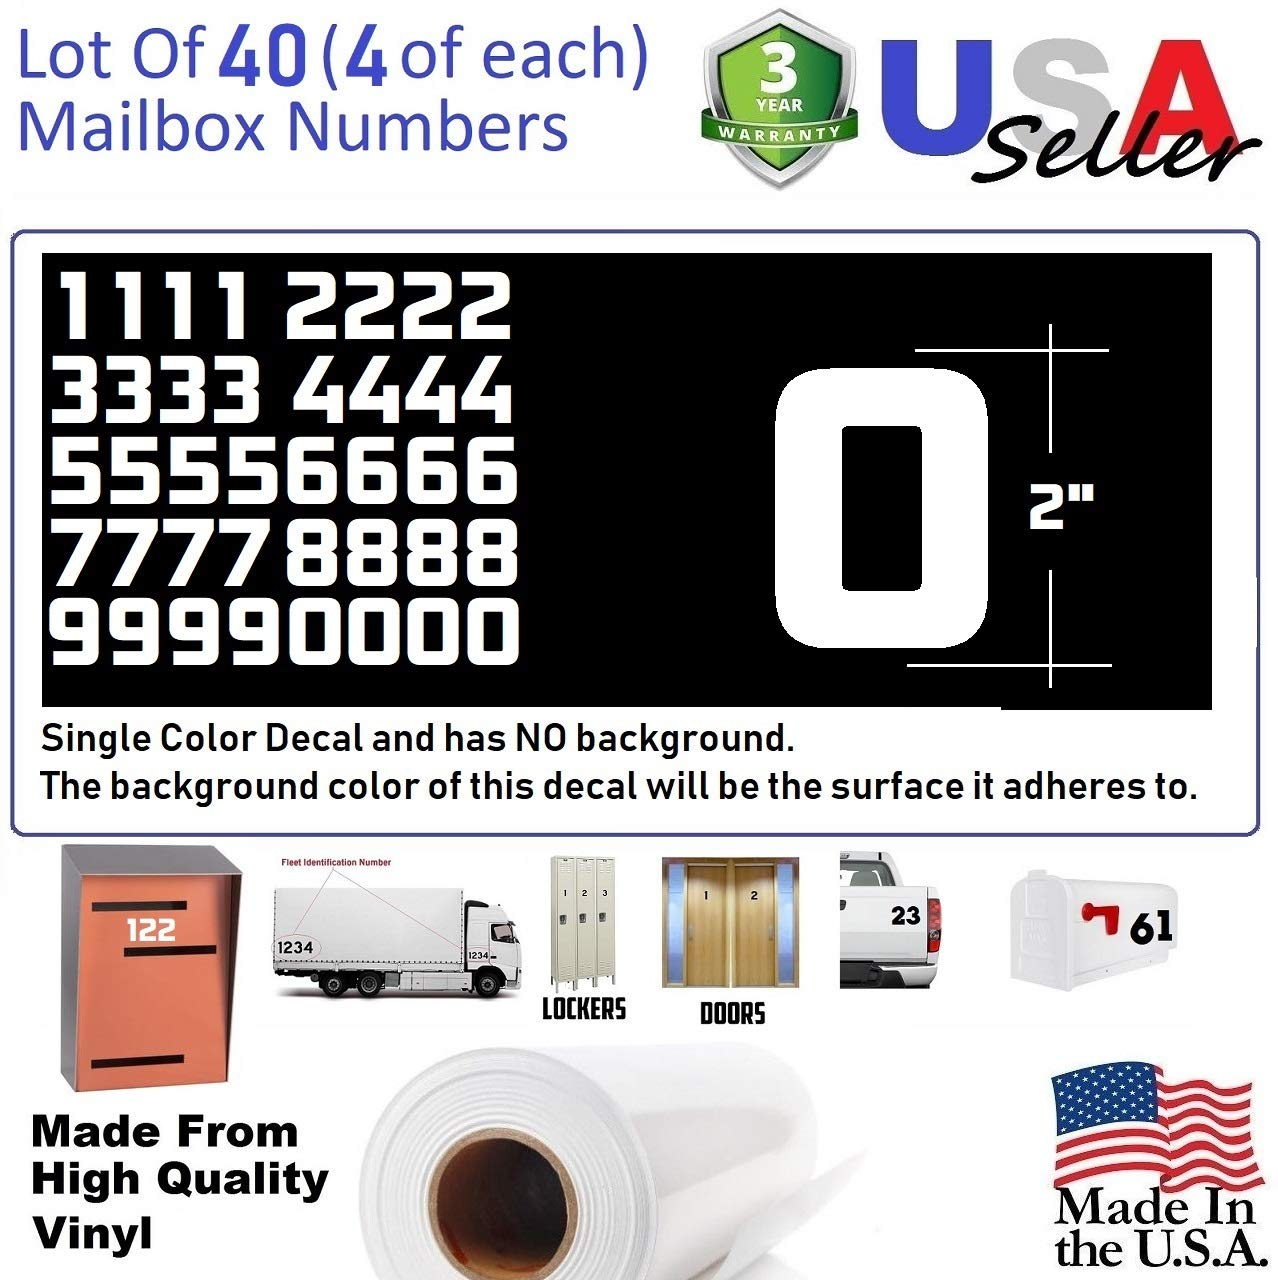 2'' White Color Custom Mailbox Numbers, Lot of 40 (4 of each number form 0 to 9) 2 inch tall, white Modern Vinyl Mailbox Numbers,Doors,Tool Box,Locker,Car,Truck,Address Decal Stickers (Konkretika Bold)